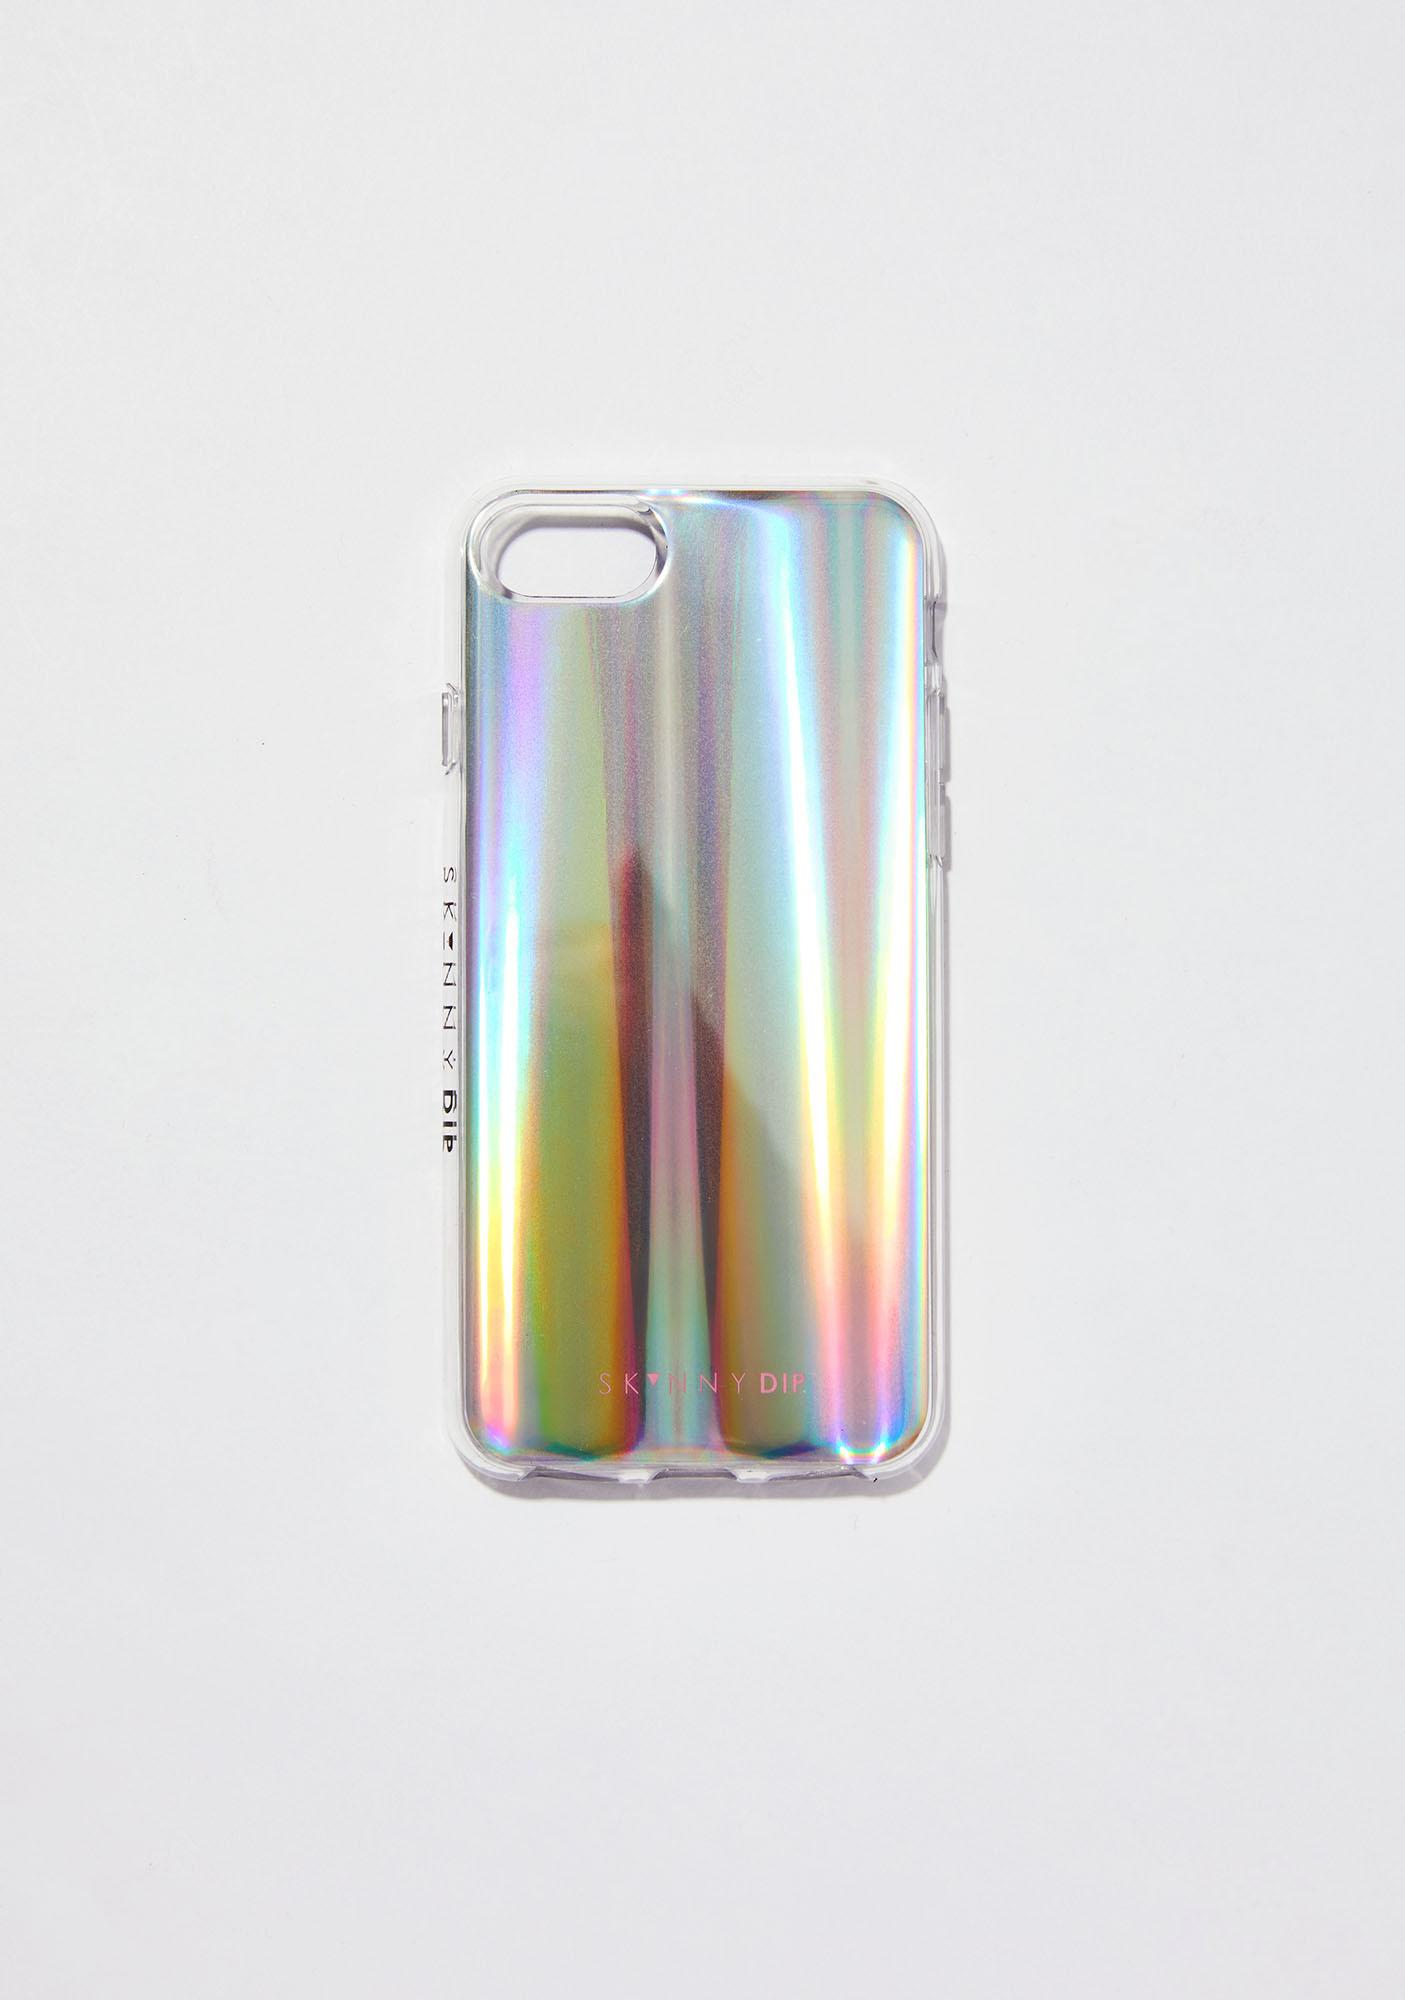 Skinnydip Flash iPhone Case